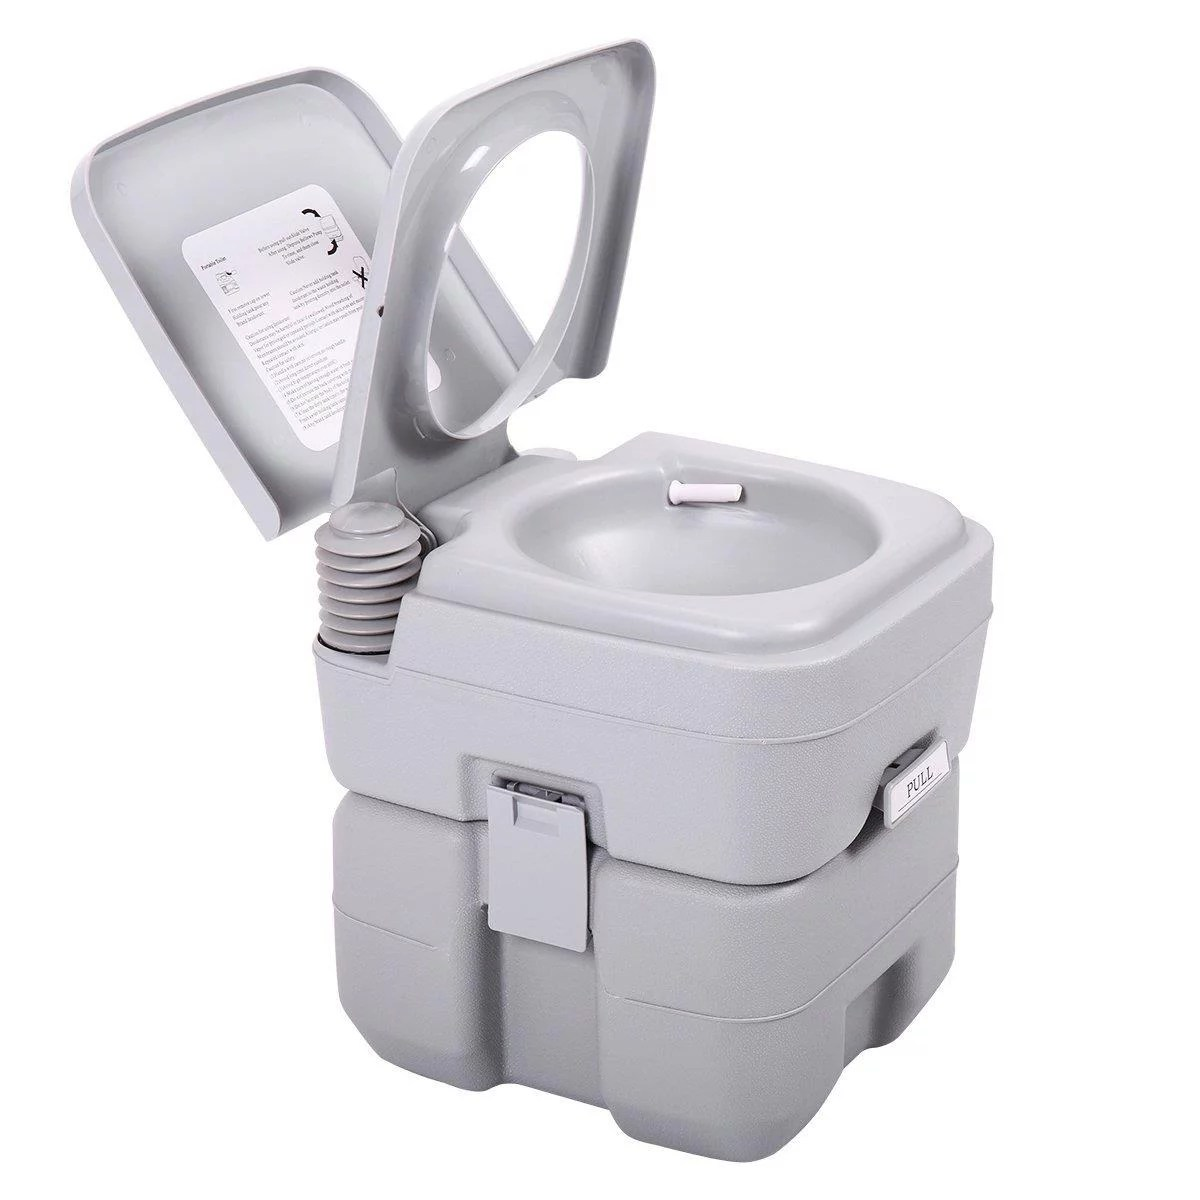 Camping Toilet Ktaxon Portable Camping Toilet 5 Gallon Capacity Leak Proof Compact Porta Potty Up To 50 Flushes Great For Travel Camping Rv Boating Hiking